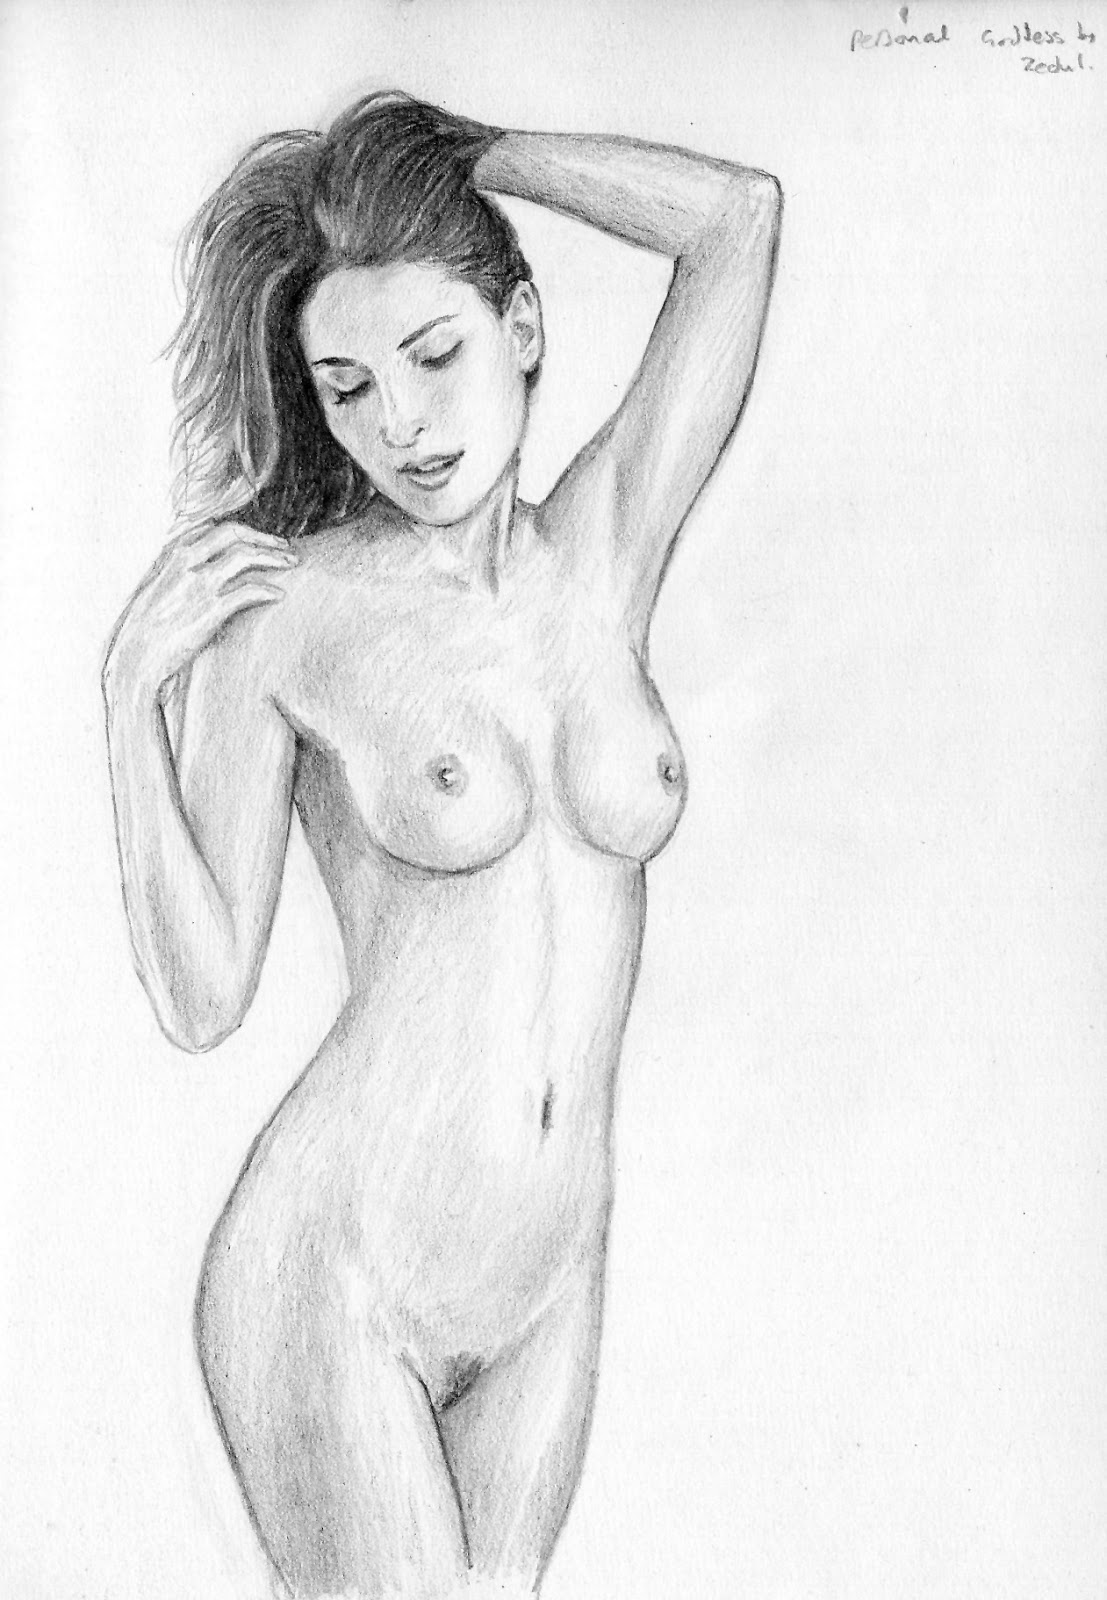 Nude hot girls drawings erotic photos